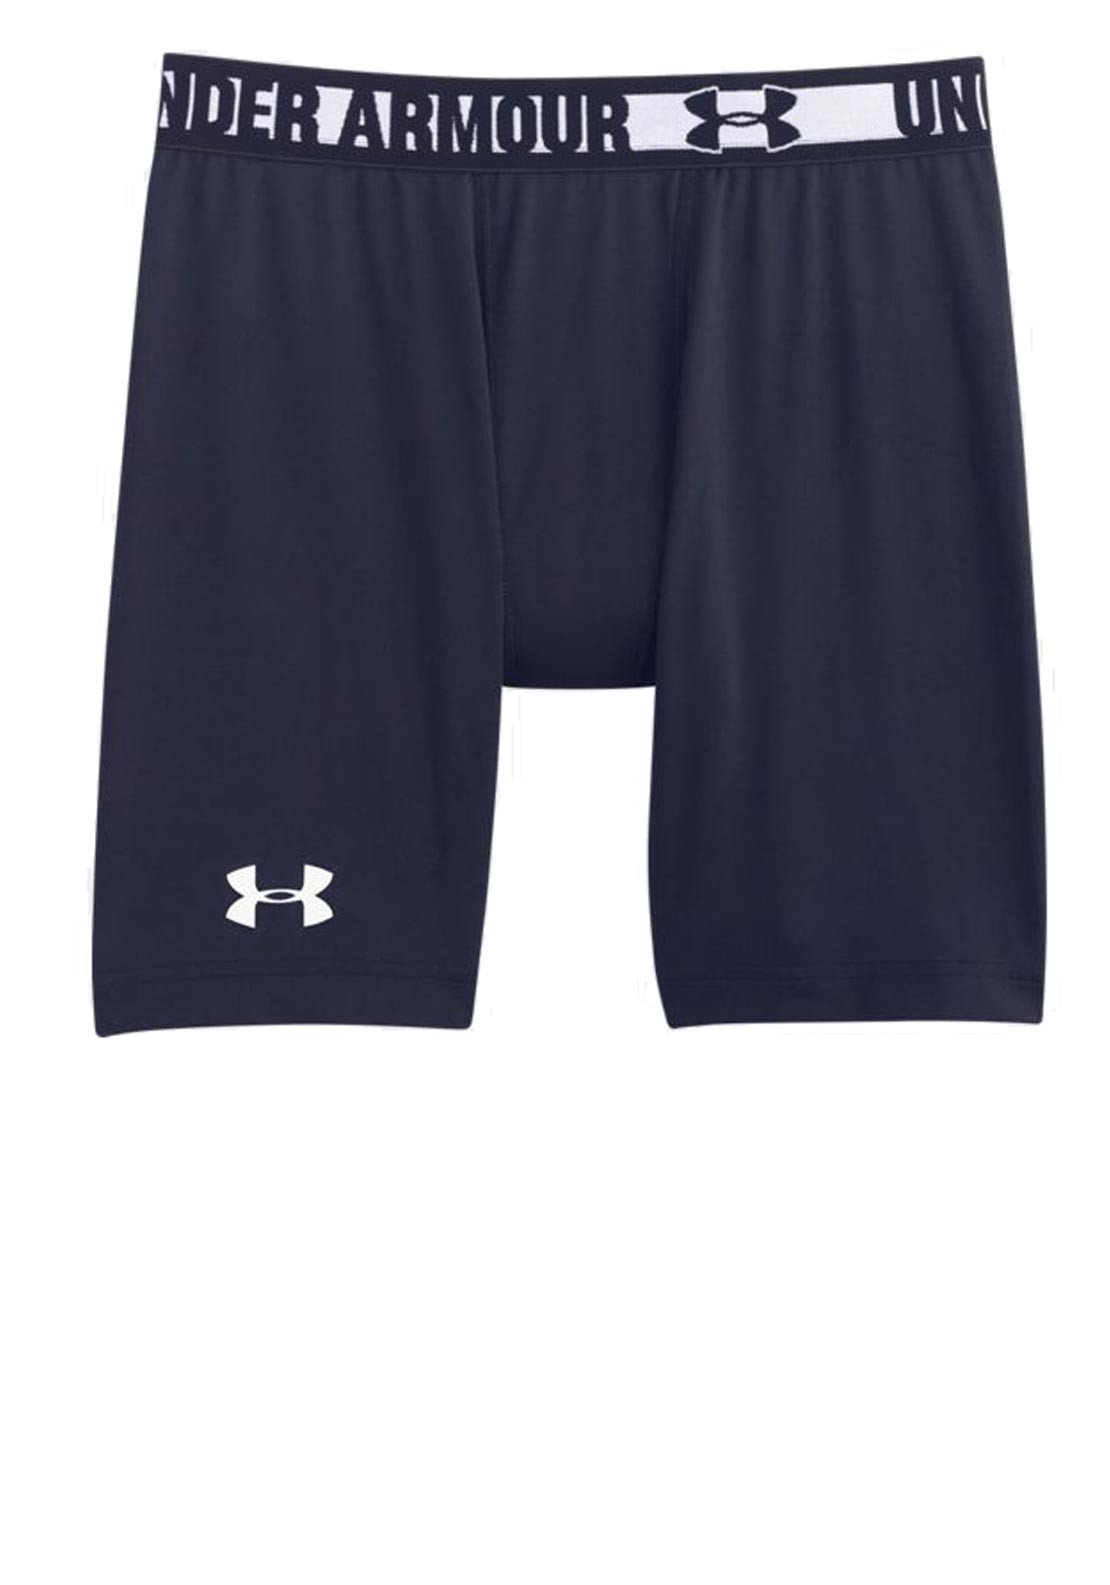 Under Armour Mens Heat Gear Sonic Compression Shorts, Black